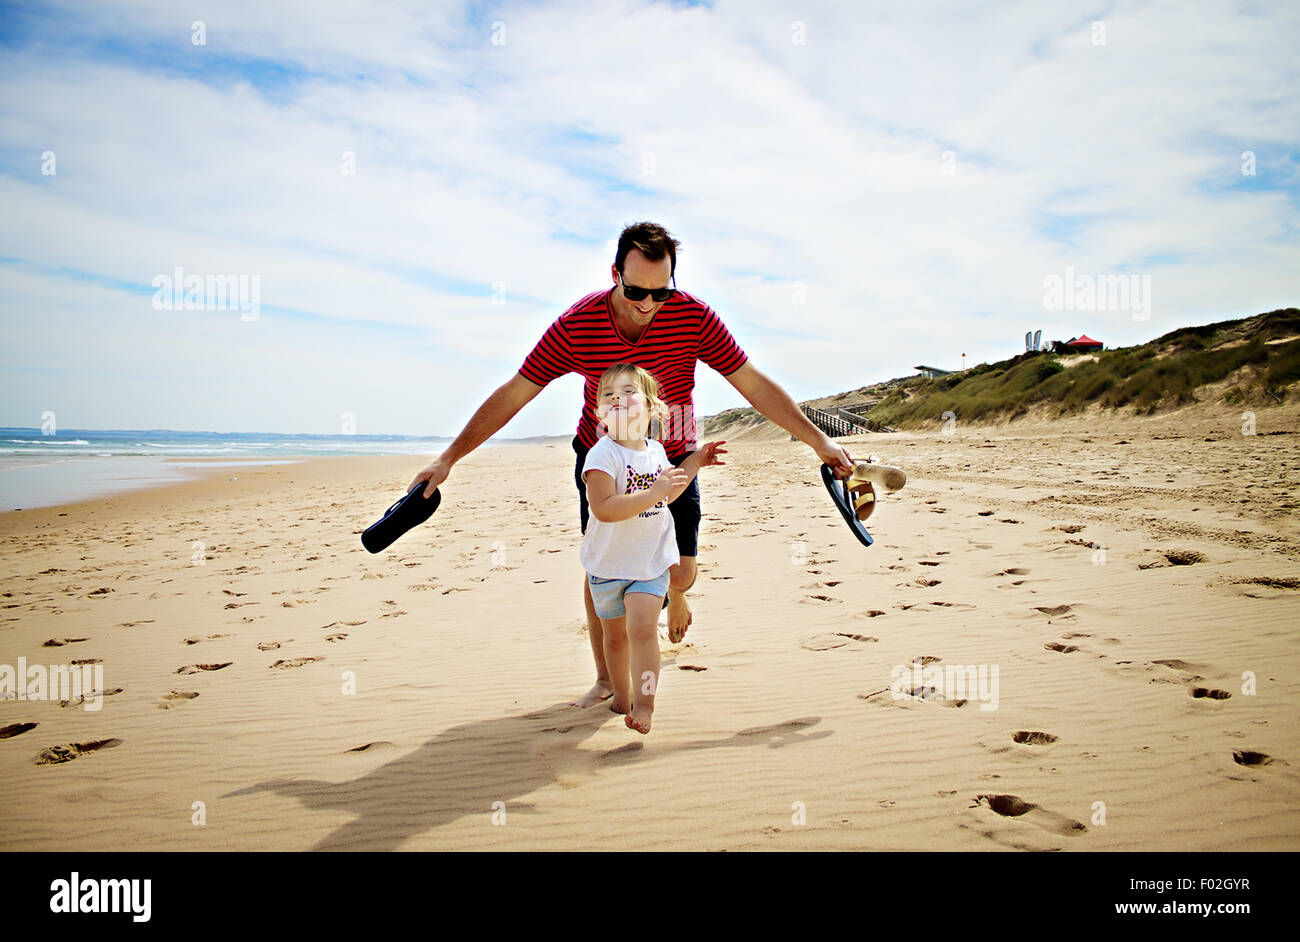 Father and daughter racing on the beach - Stock Image